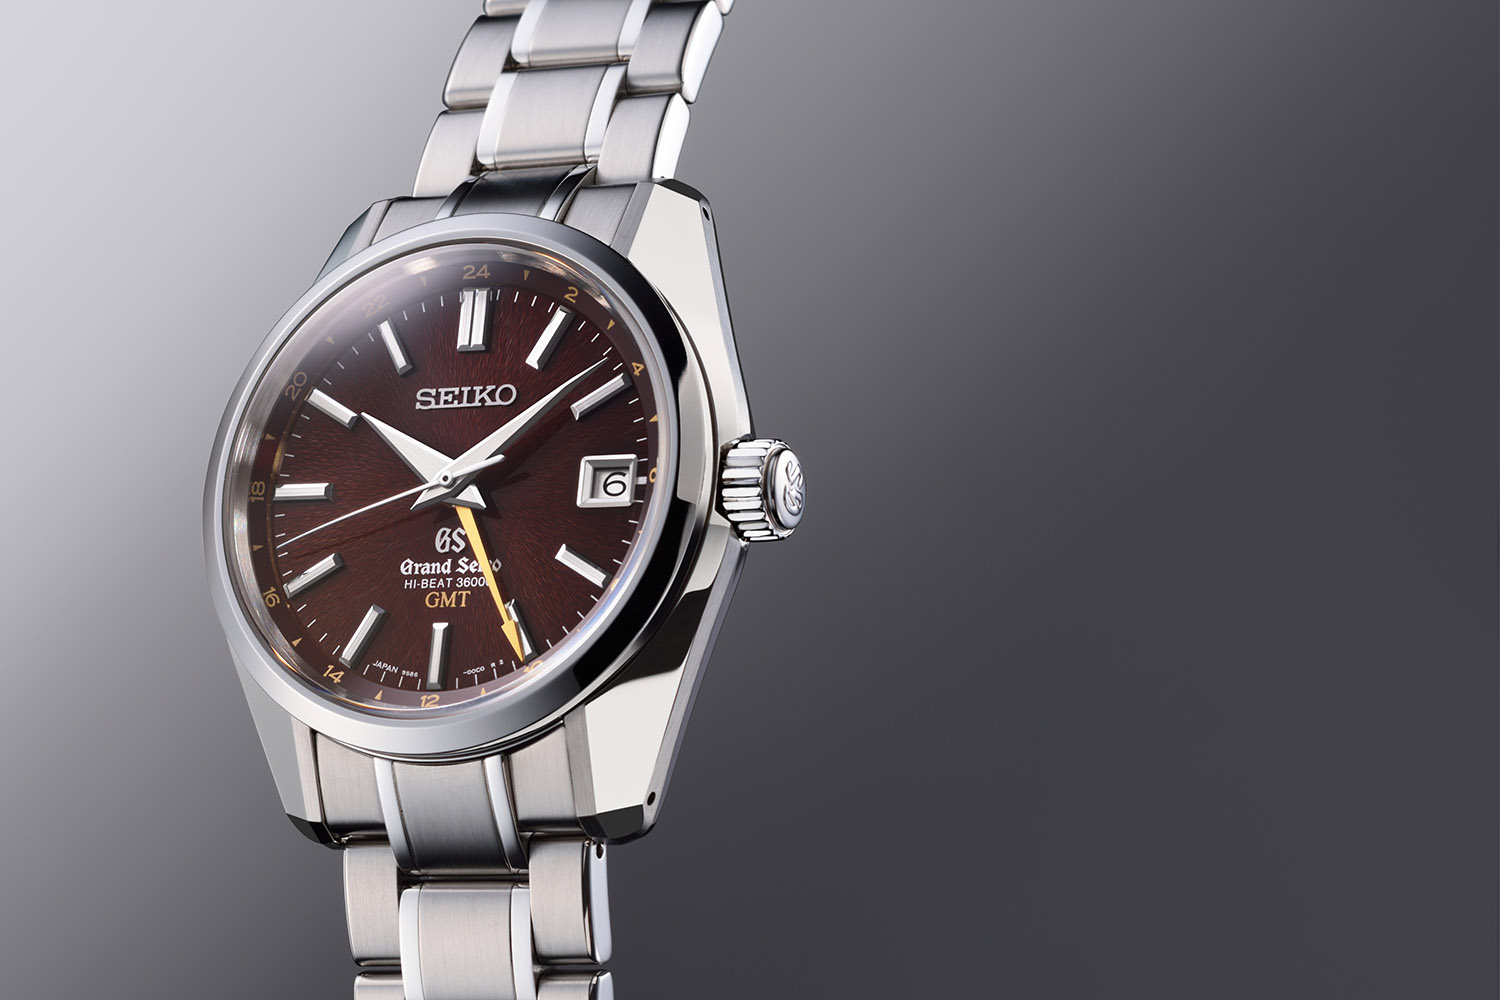 grand seiko hi-beat 36000 gmt limited edition sbgj021